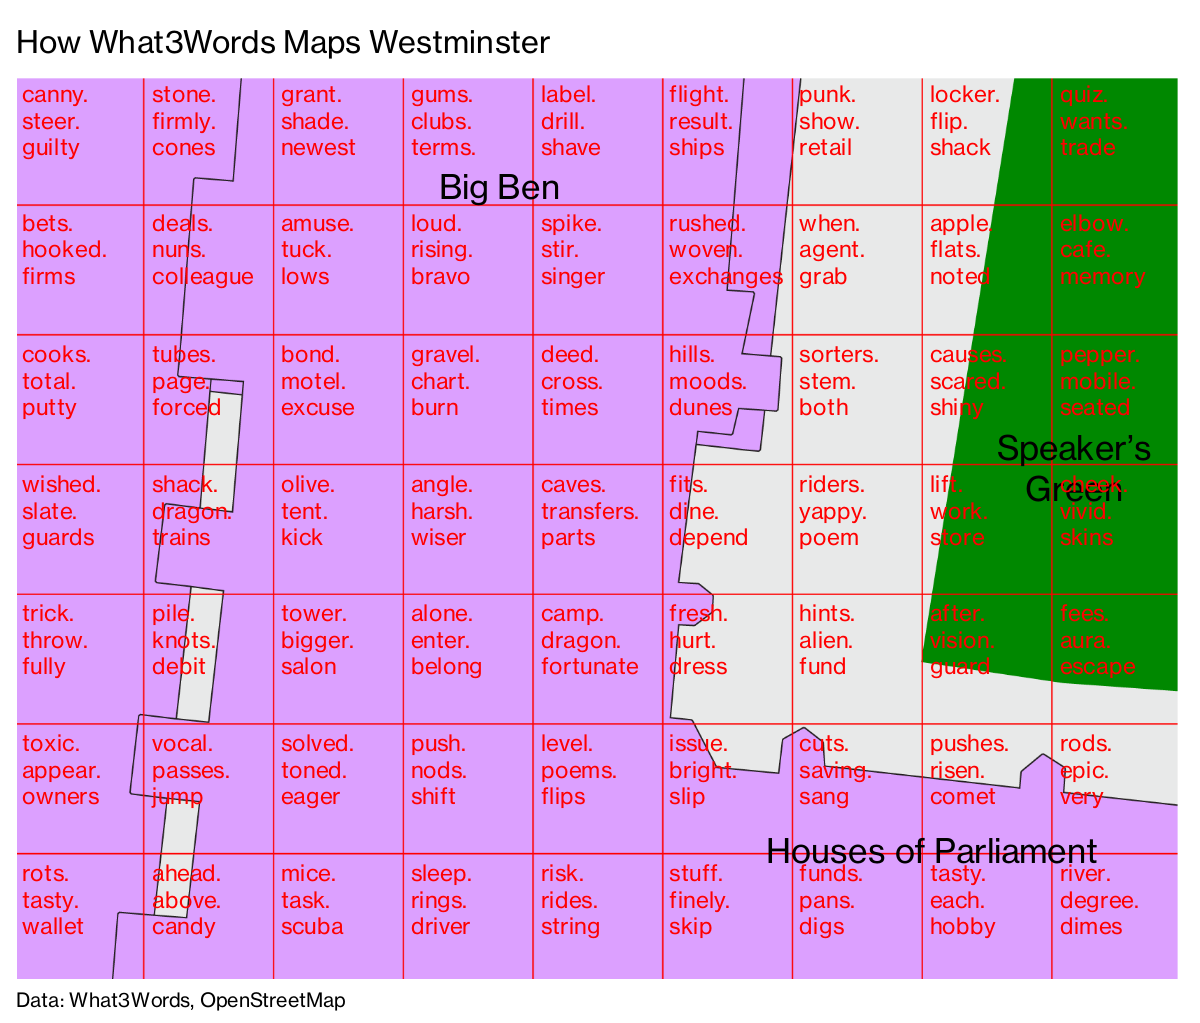 This Startup Slices the World Into 57 Trillion Squares - Bloomberg